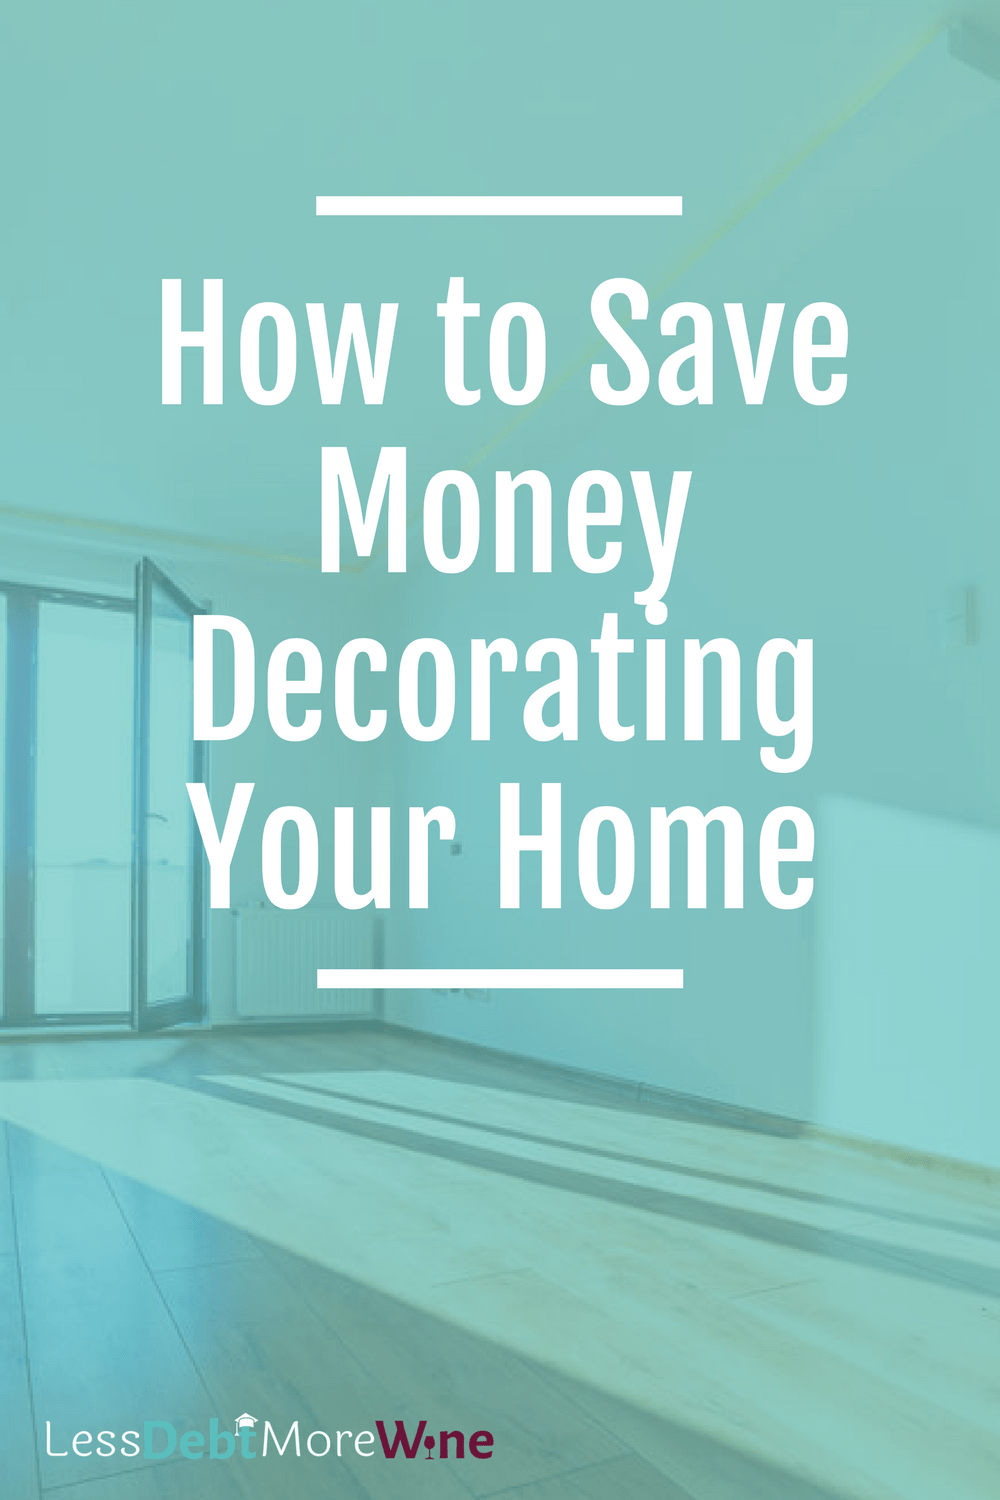 How to save money decorating your home | DIY | home deco | decorating your home on a budget